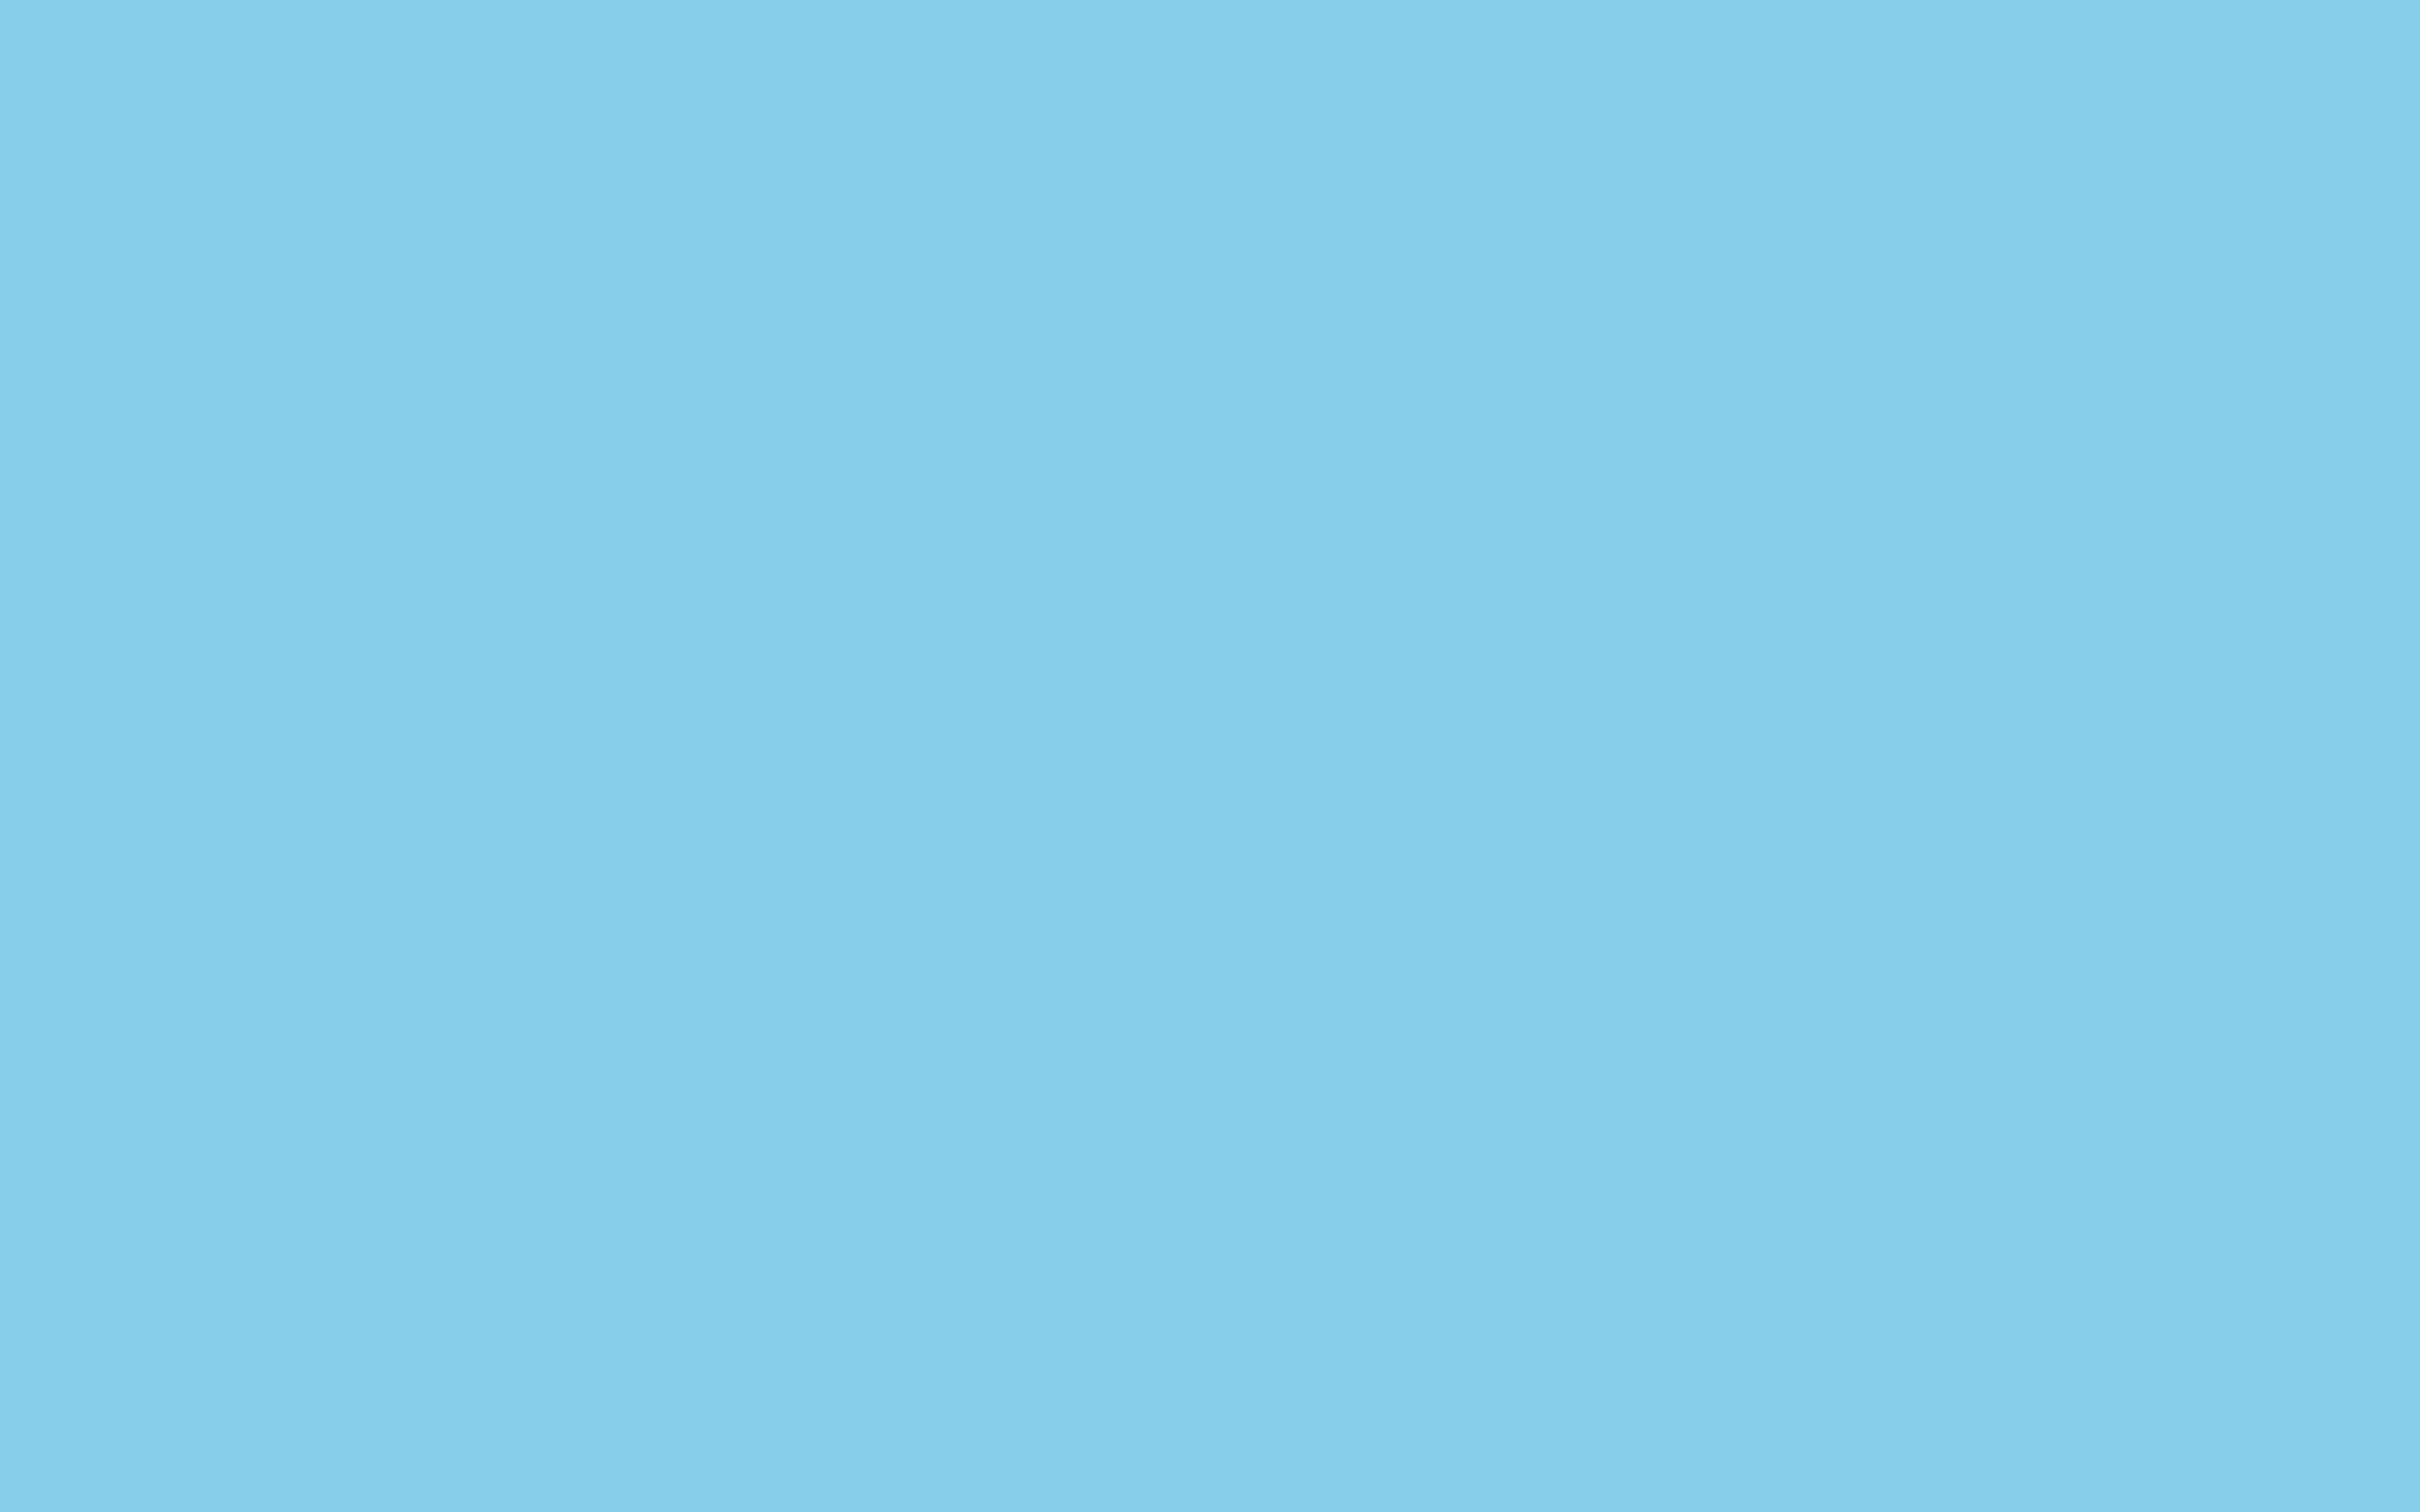 2560x1600 Sky Blue Solid Color Background